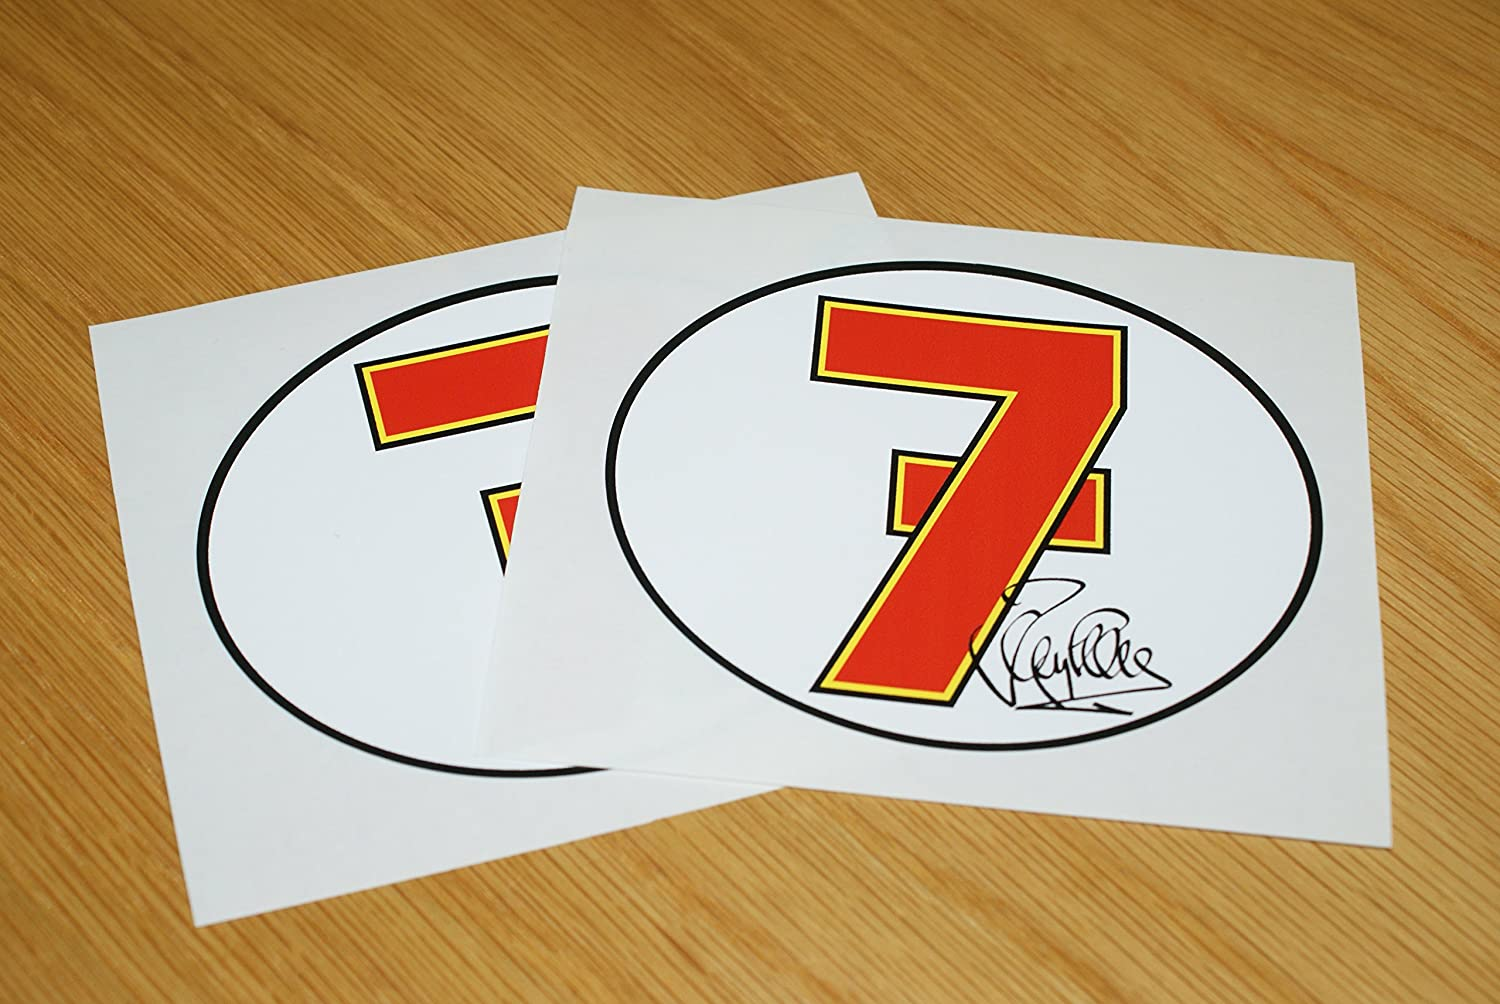 Barry Sheene Number 7 Stickers (Pair) Rapro Graphics